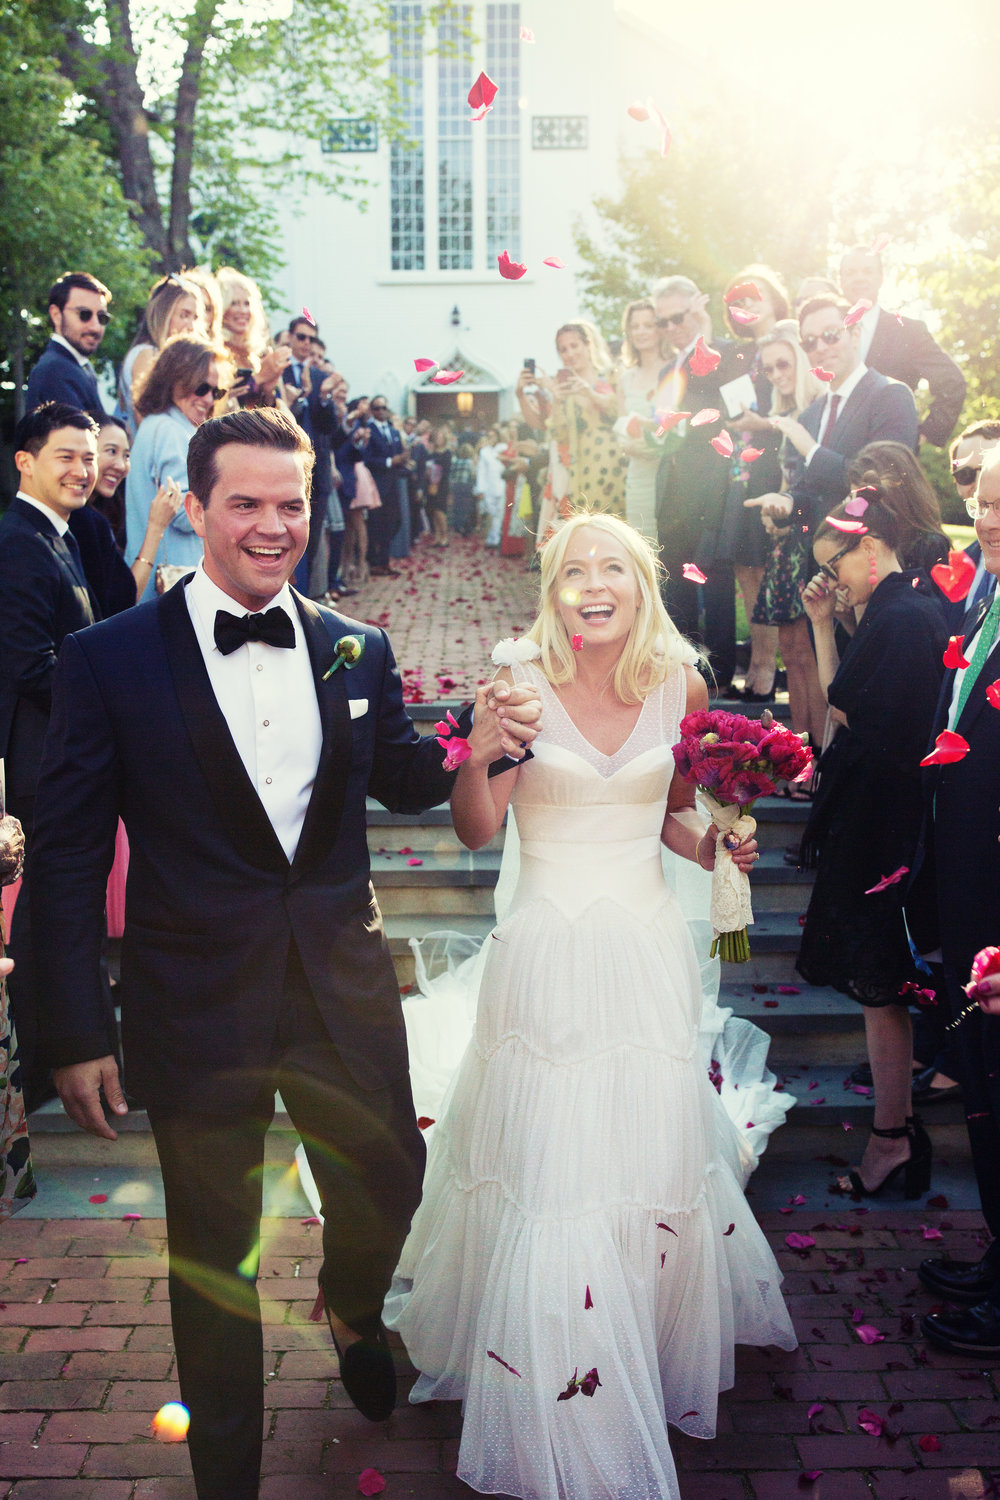 Vogue Wedding Photographed by Nathan Coe